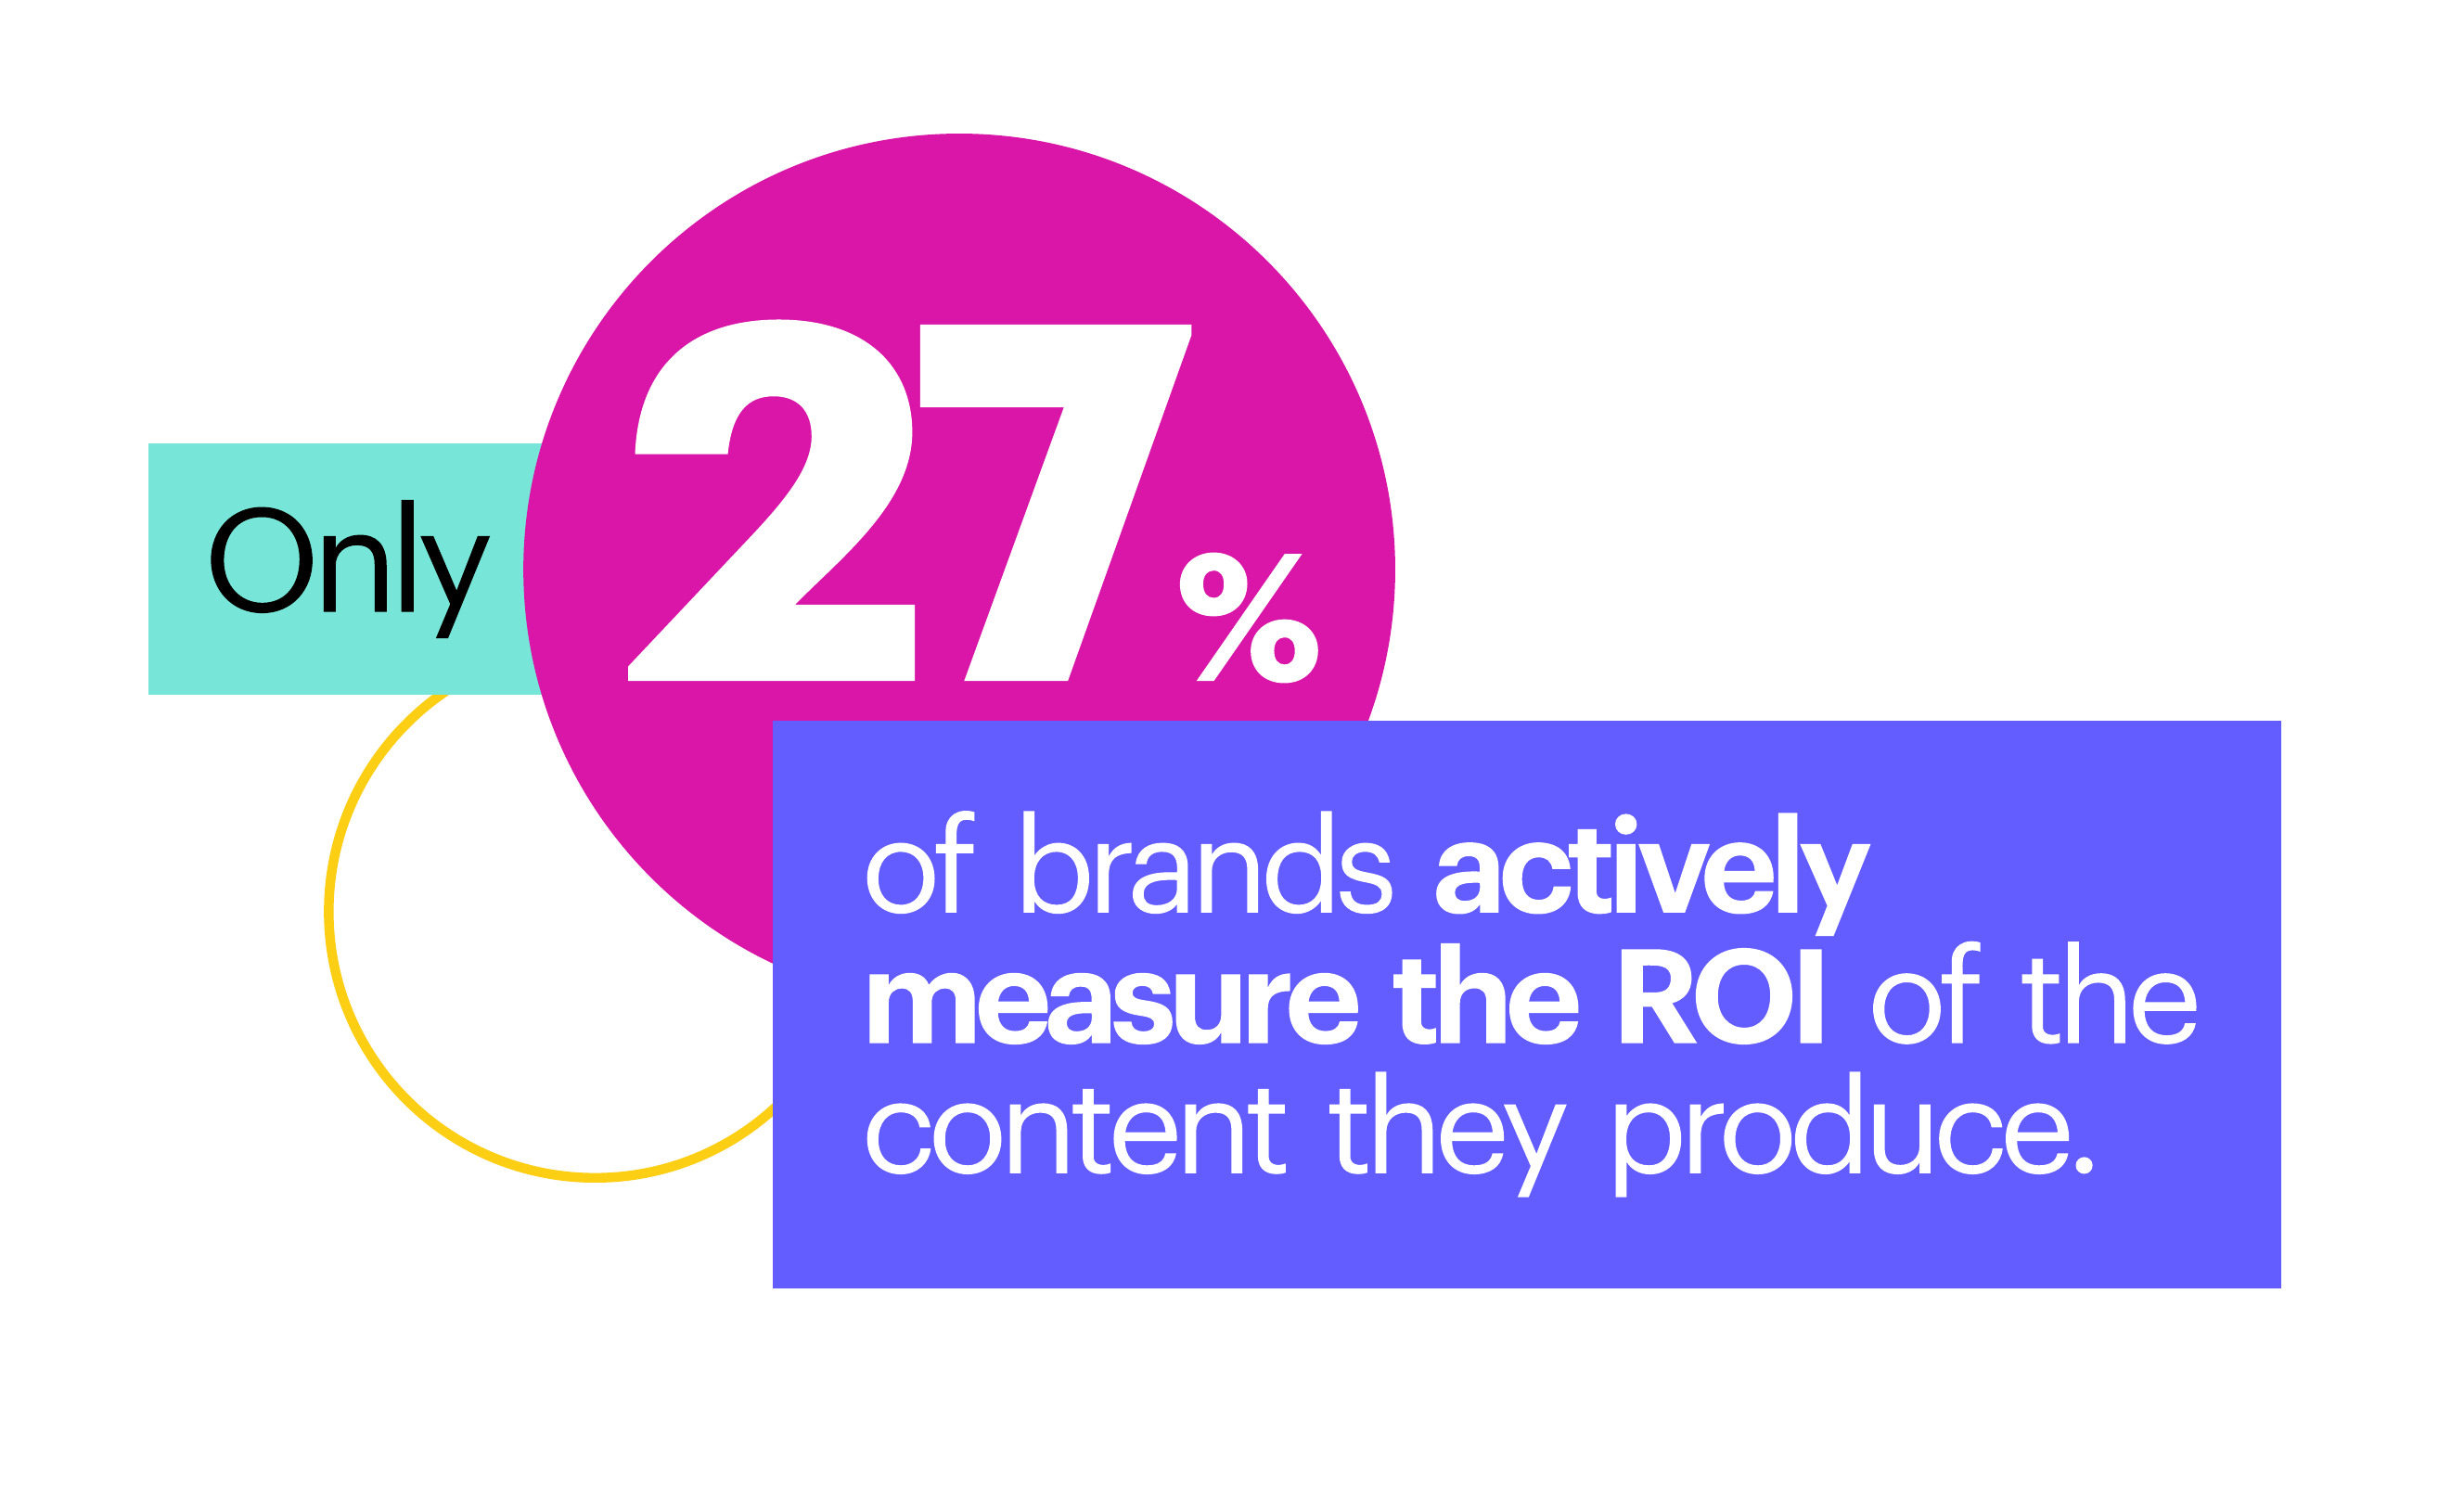 Only 27% of brands actively measure the ROI of the content they produce.